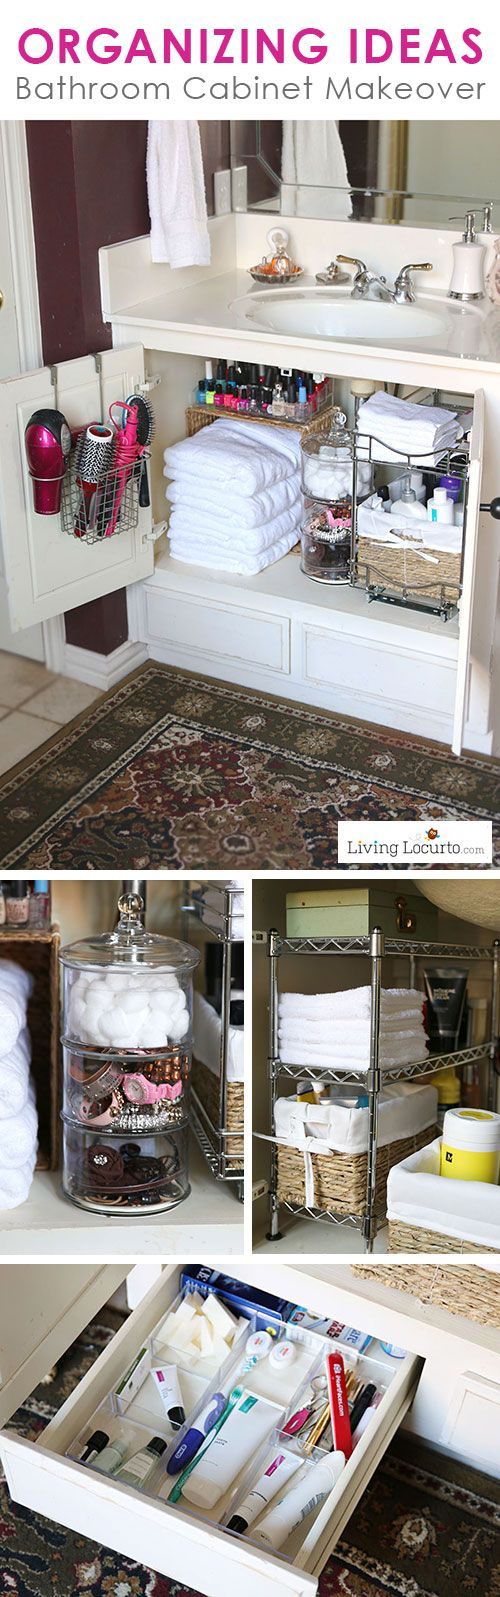 Bathroom organizers ideas - Great Organizing Ideas For Your Bathroom Cabinet Bathroom Organization Makeover Before And After Photos